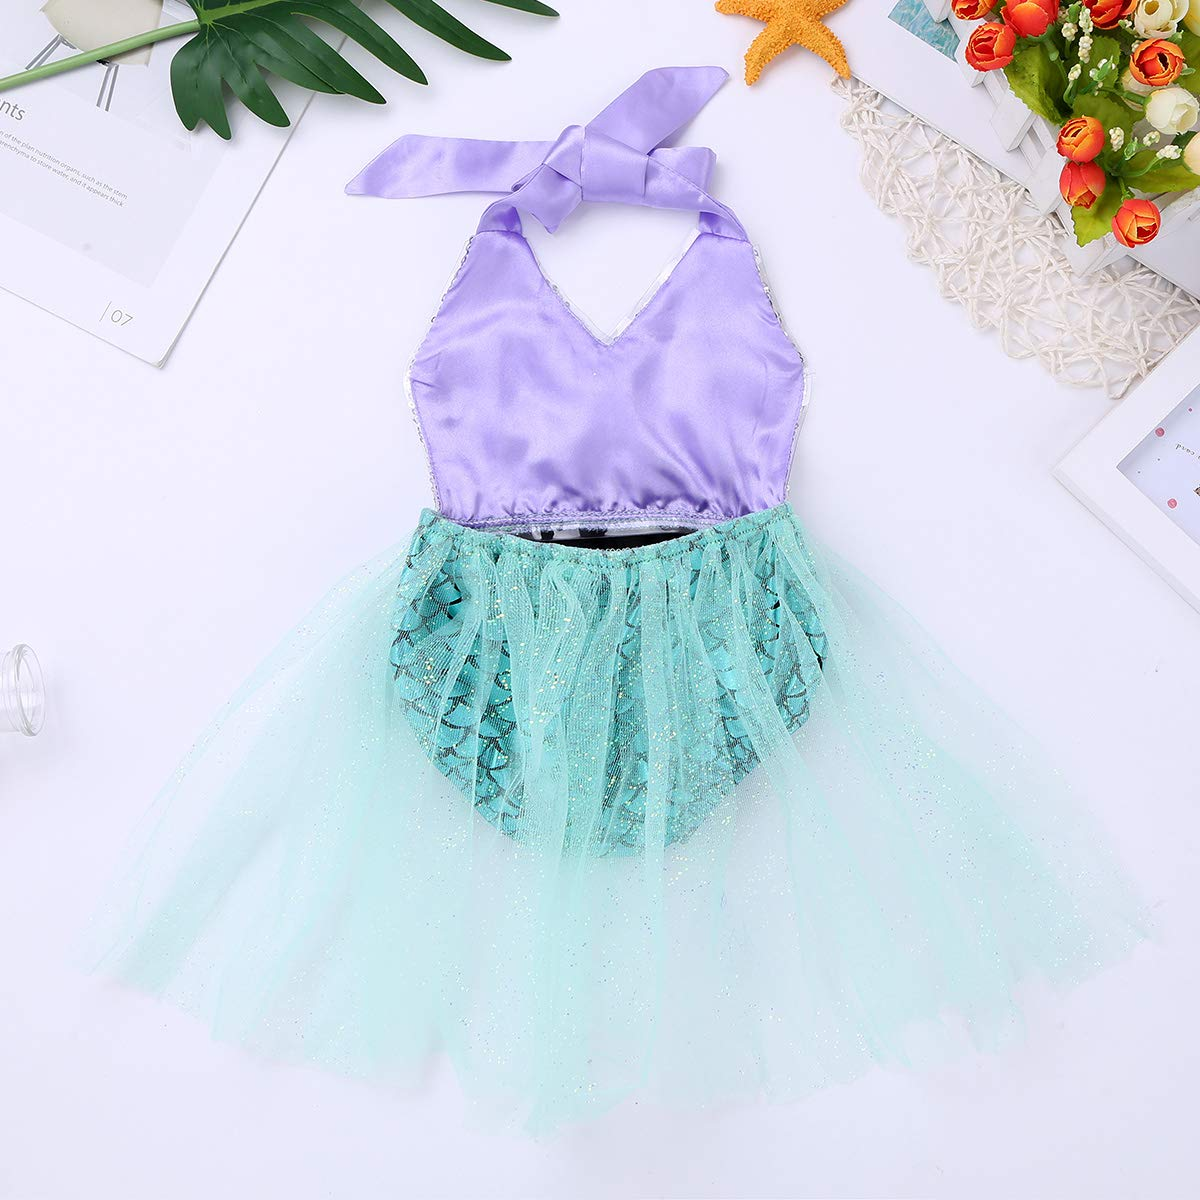 MSemis Infant Baby Girls Shiny Sequins Little Mermaid Tutu Dress Costumes for Halloween Christmas Cosplay Party